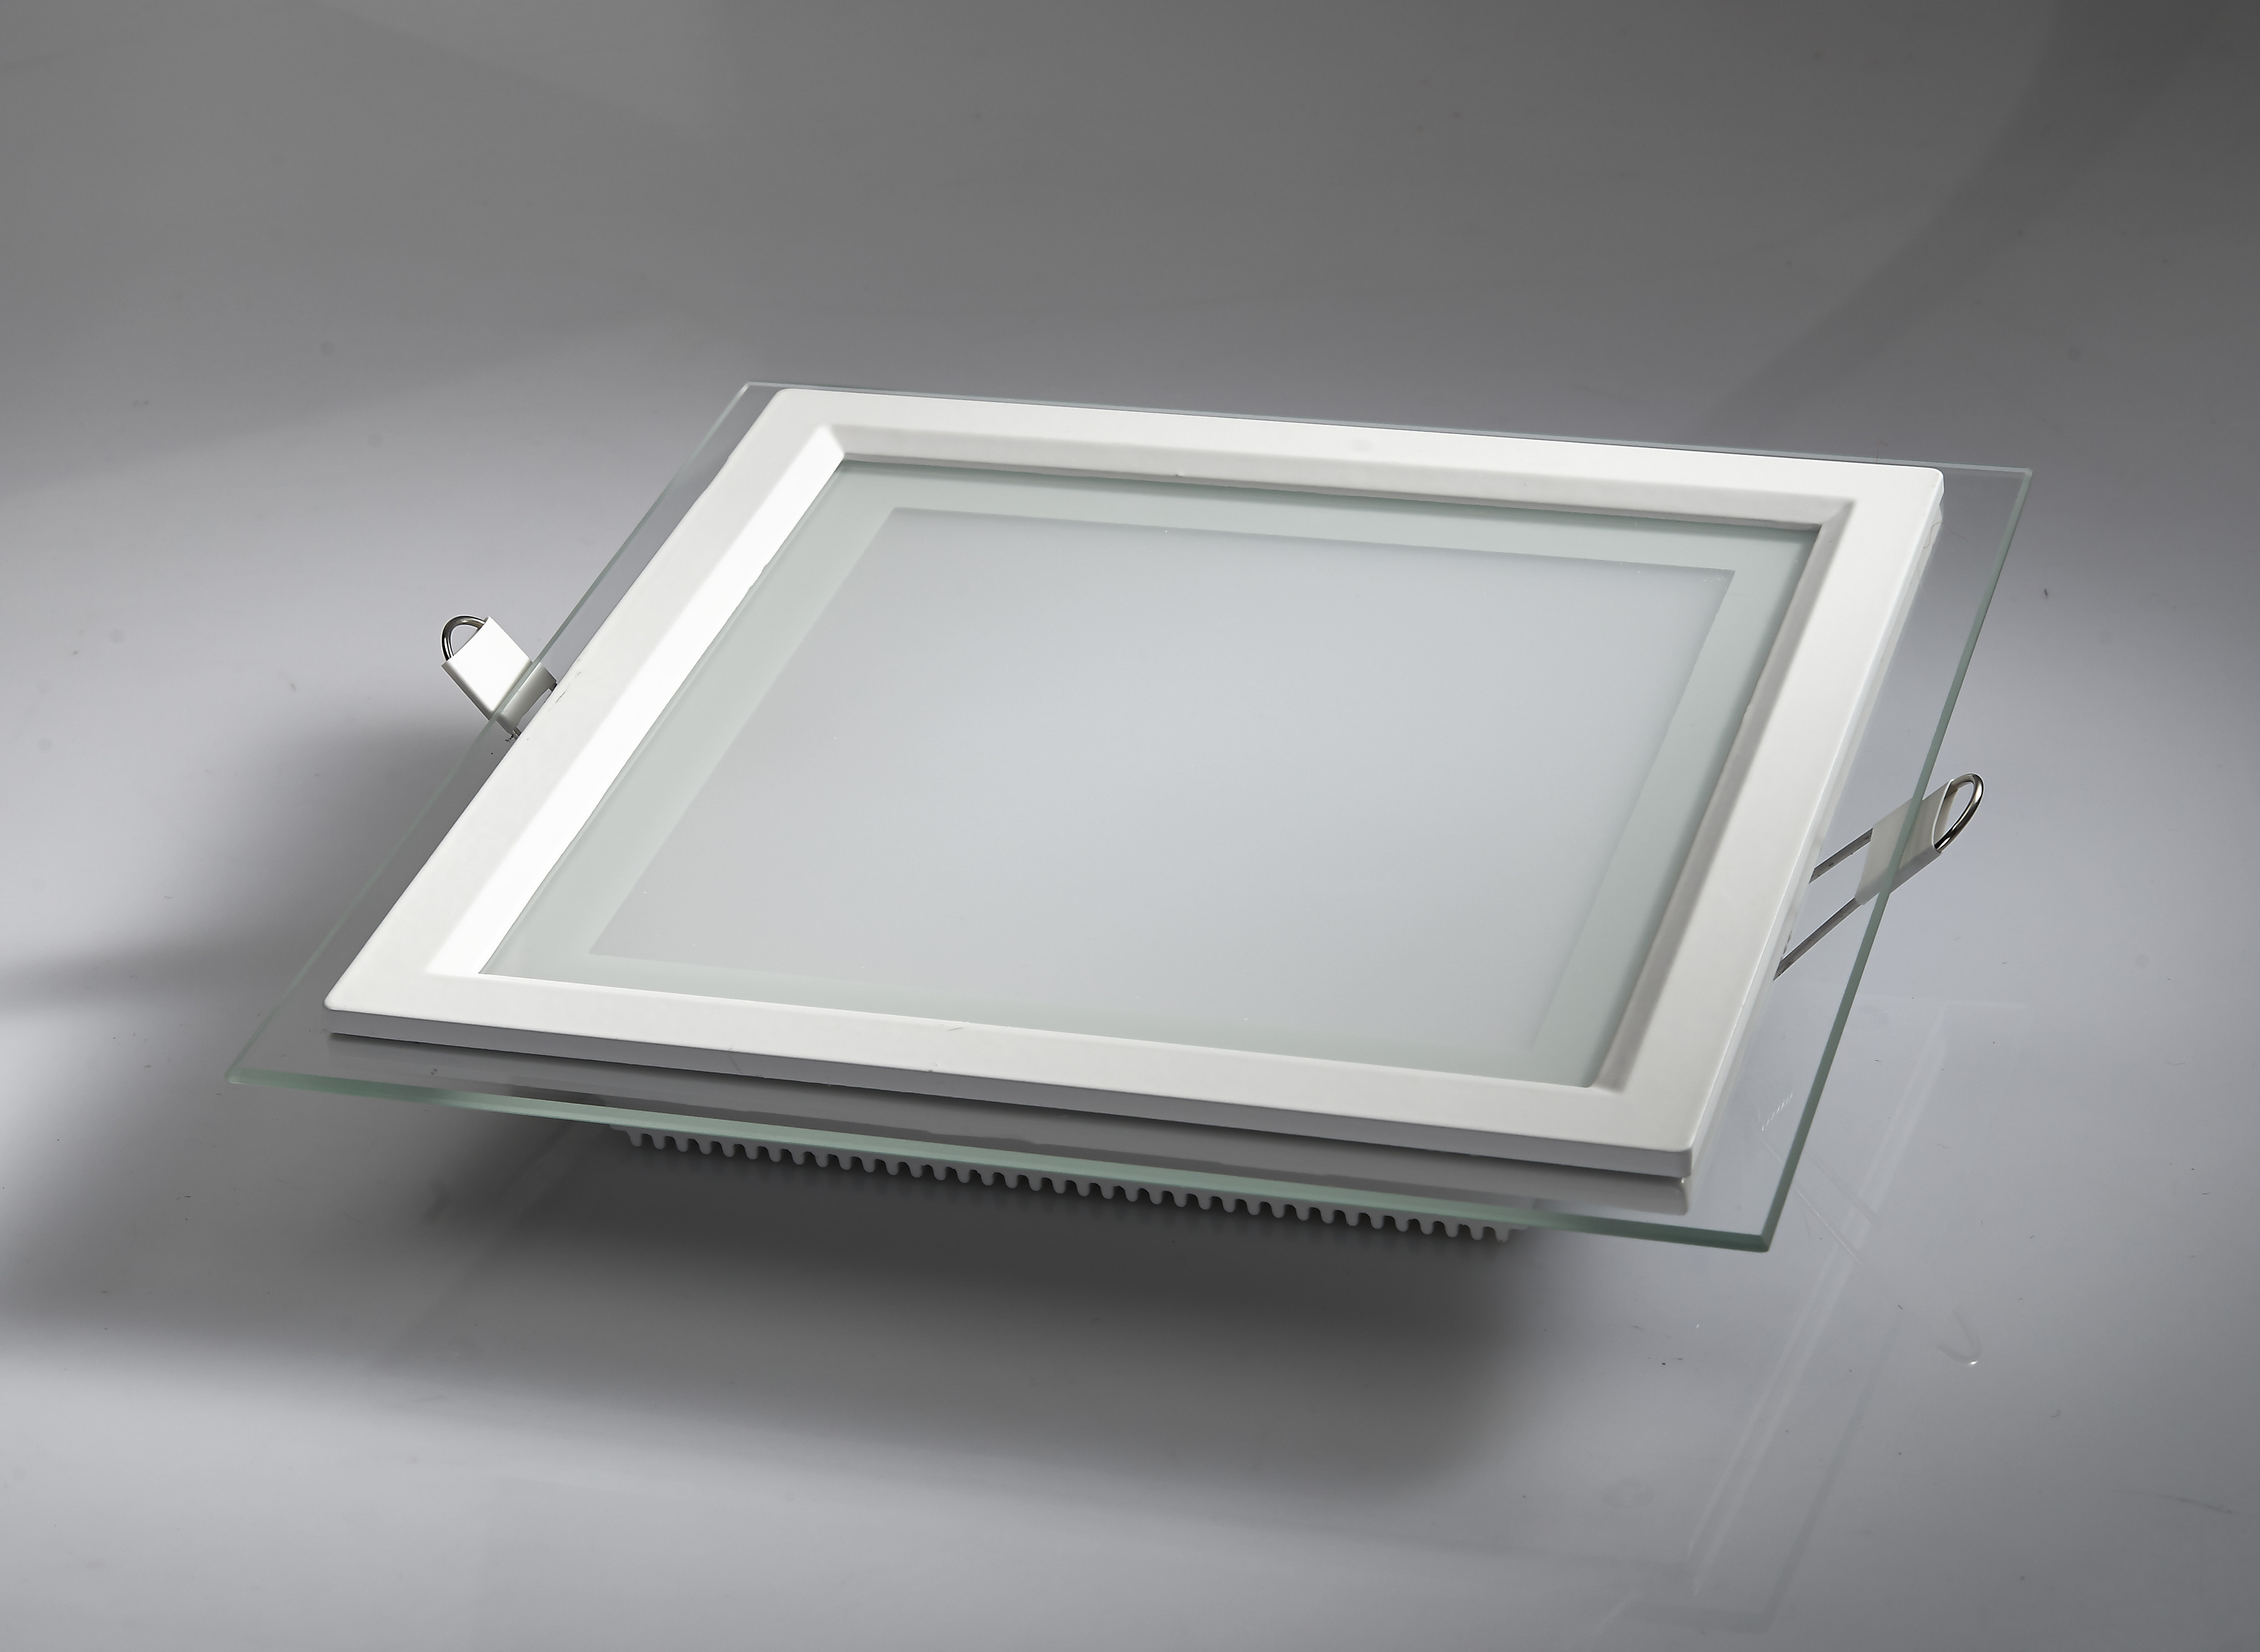 Led panel Light Square glass ceiling light 12W recessed down Lighting